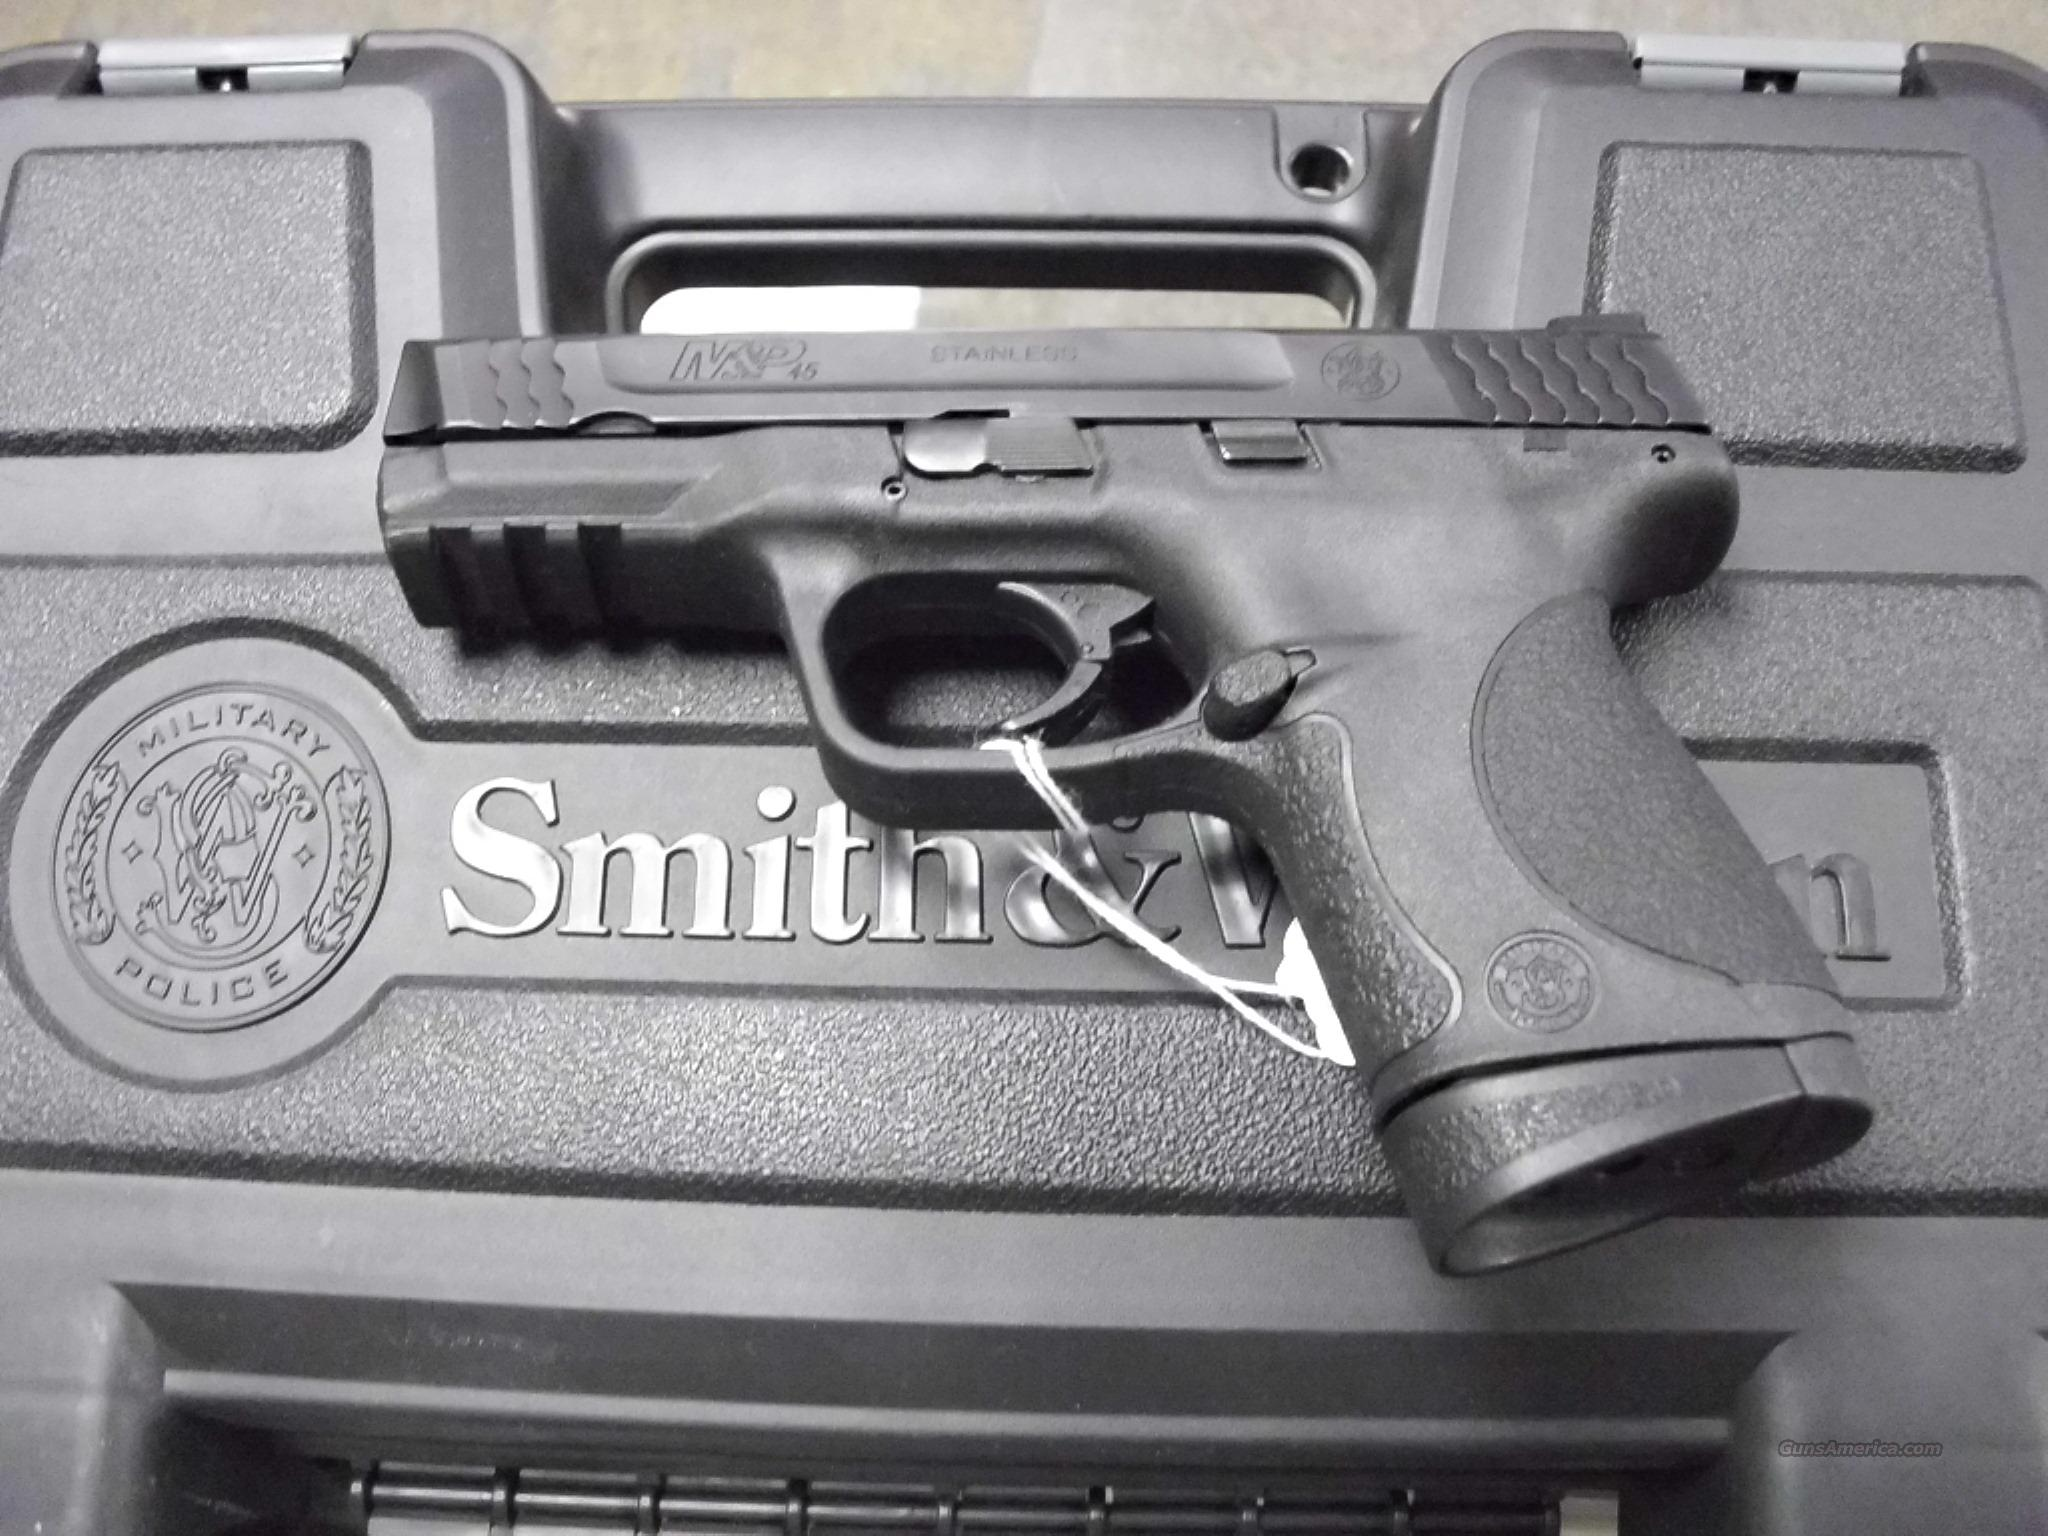 Smith & Wesson M&P45 Comp Used  Guns > Pistols > Smith & Wesson Pistols - Autos > Polymer Frame